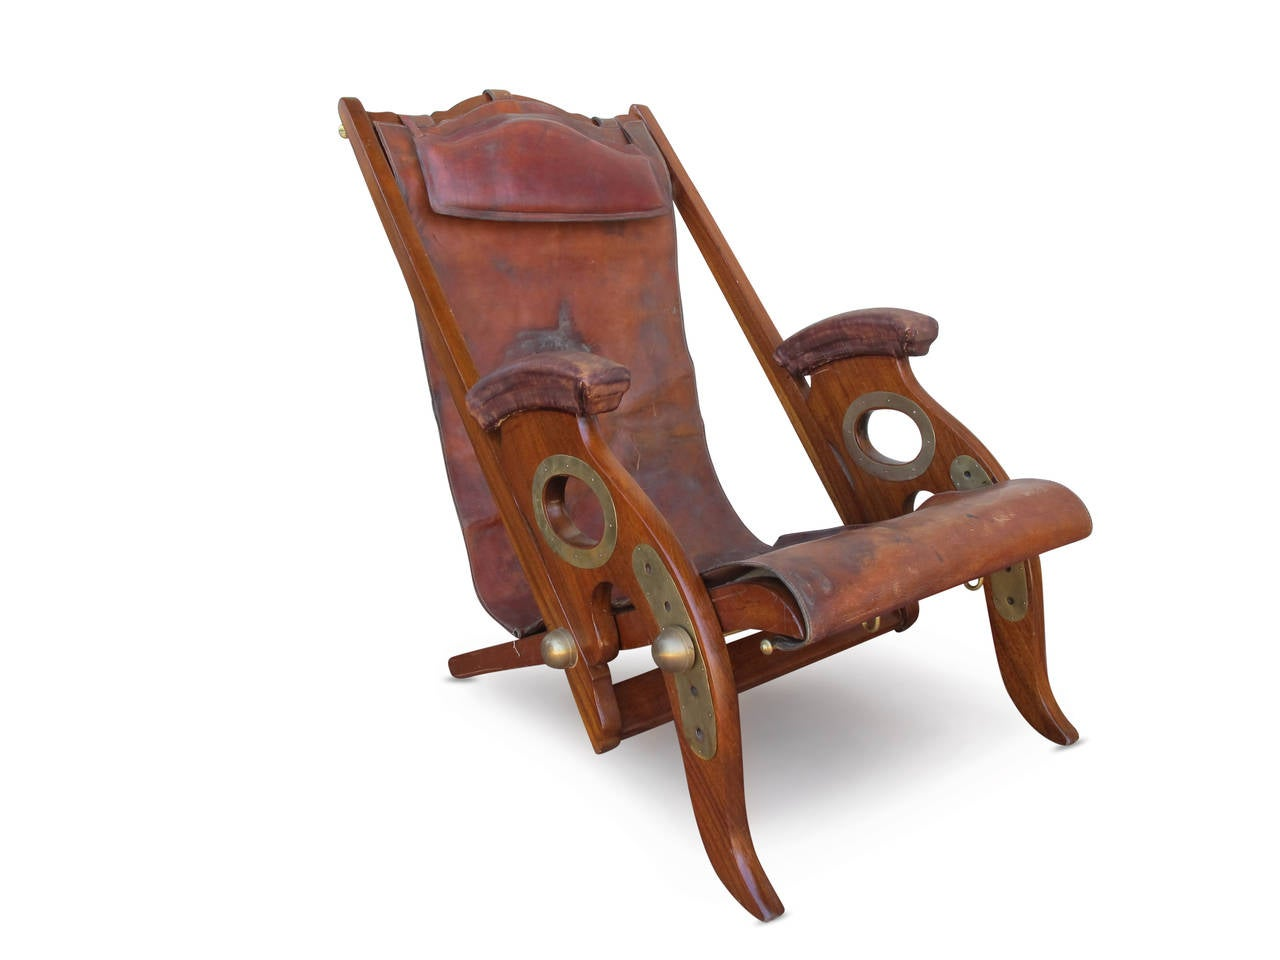 The X-frame chair folds flat and the arms also fold. The leather buttoned seat is both removable and adjustable. Padouk, a tropical hardwood from Andaman Islands, South East Asia and Burma. Incredible brass details.  Anglo-Indian, circa 1810-1830.